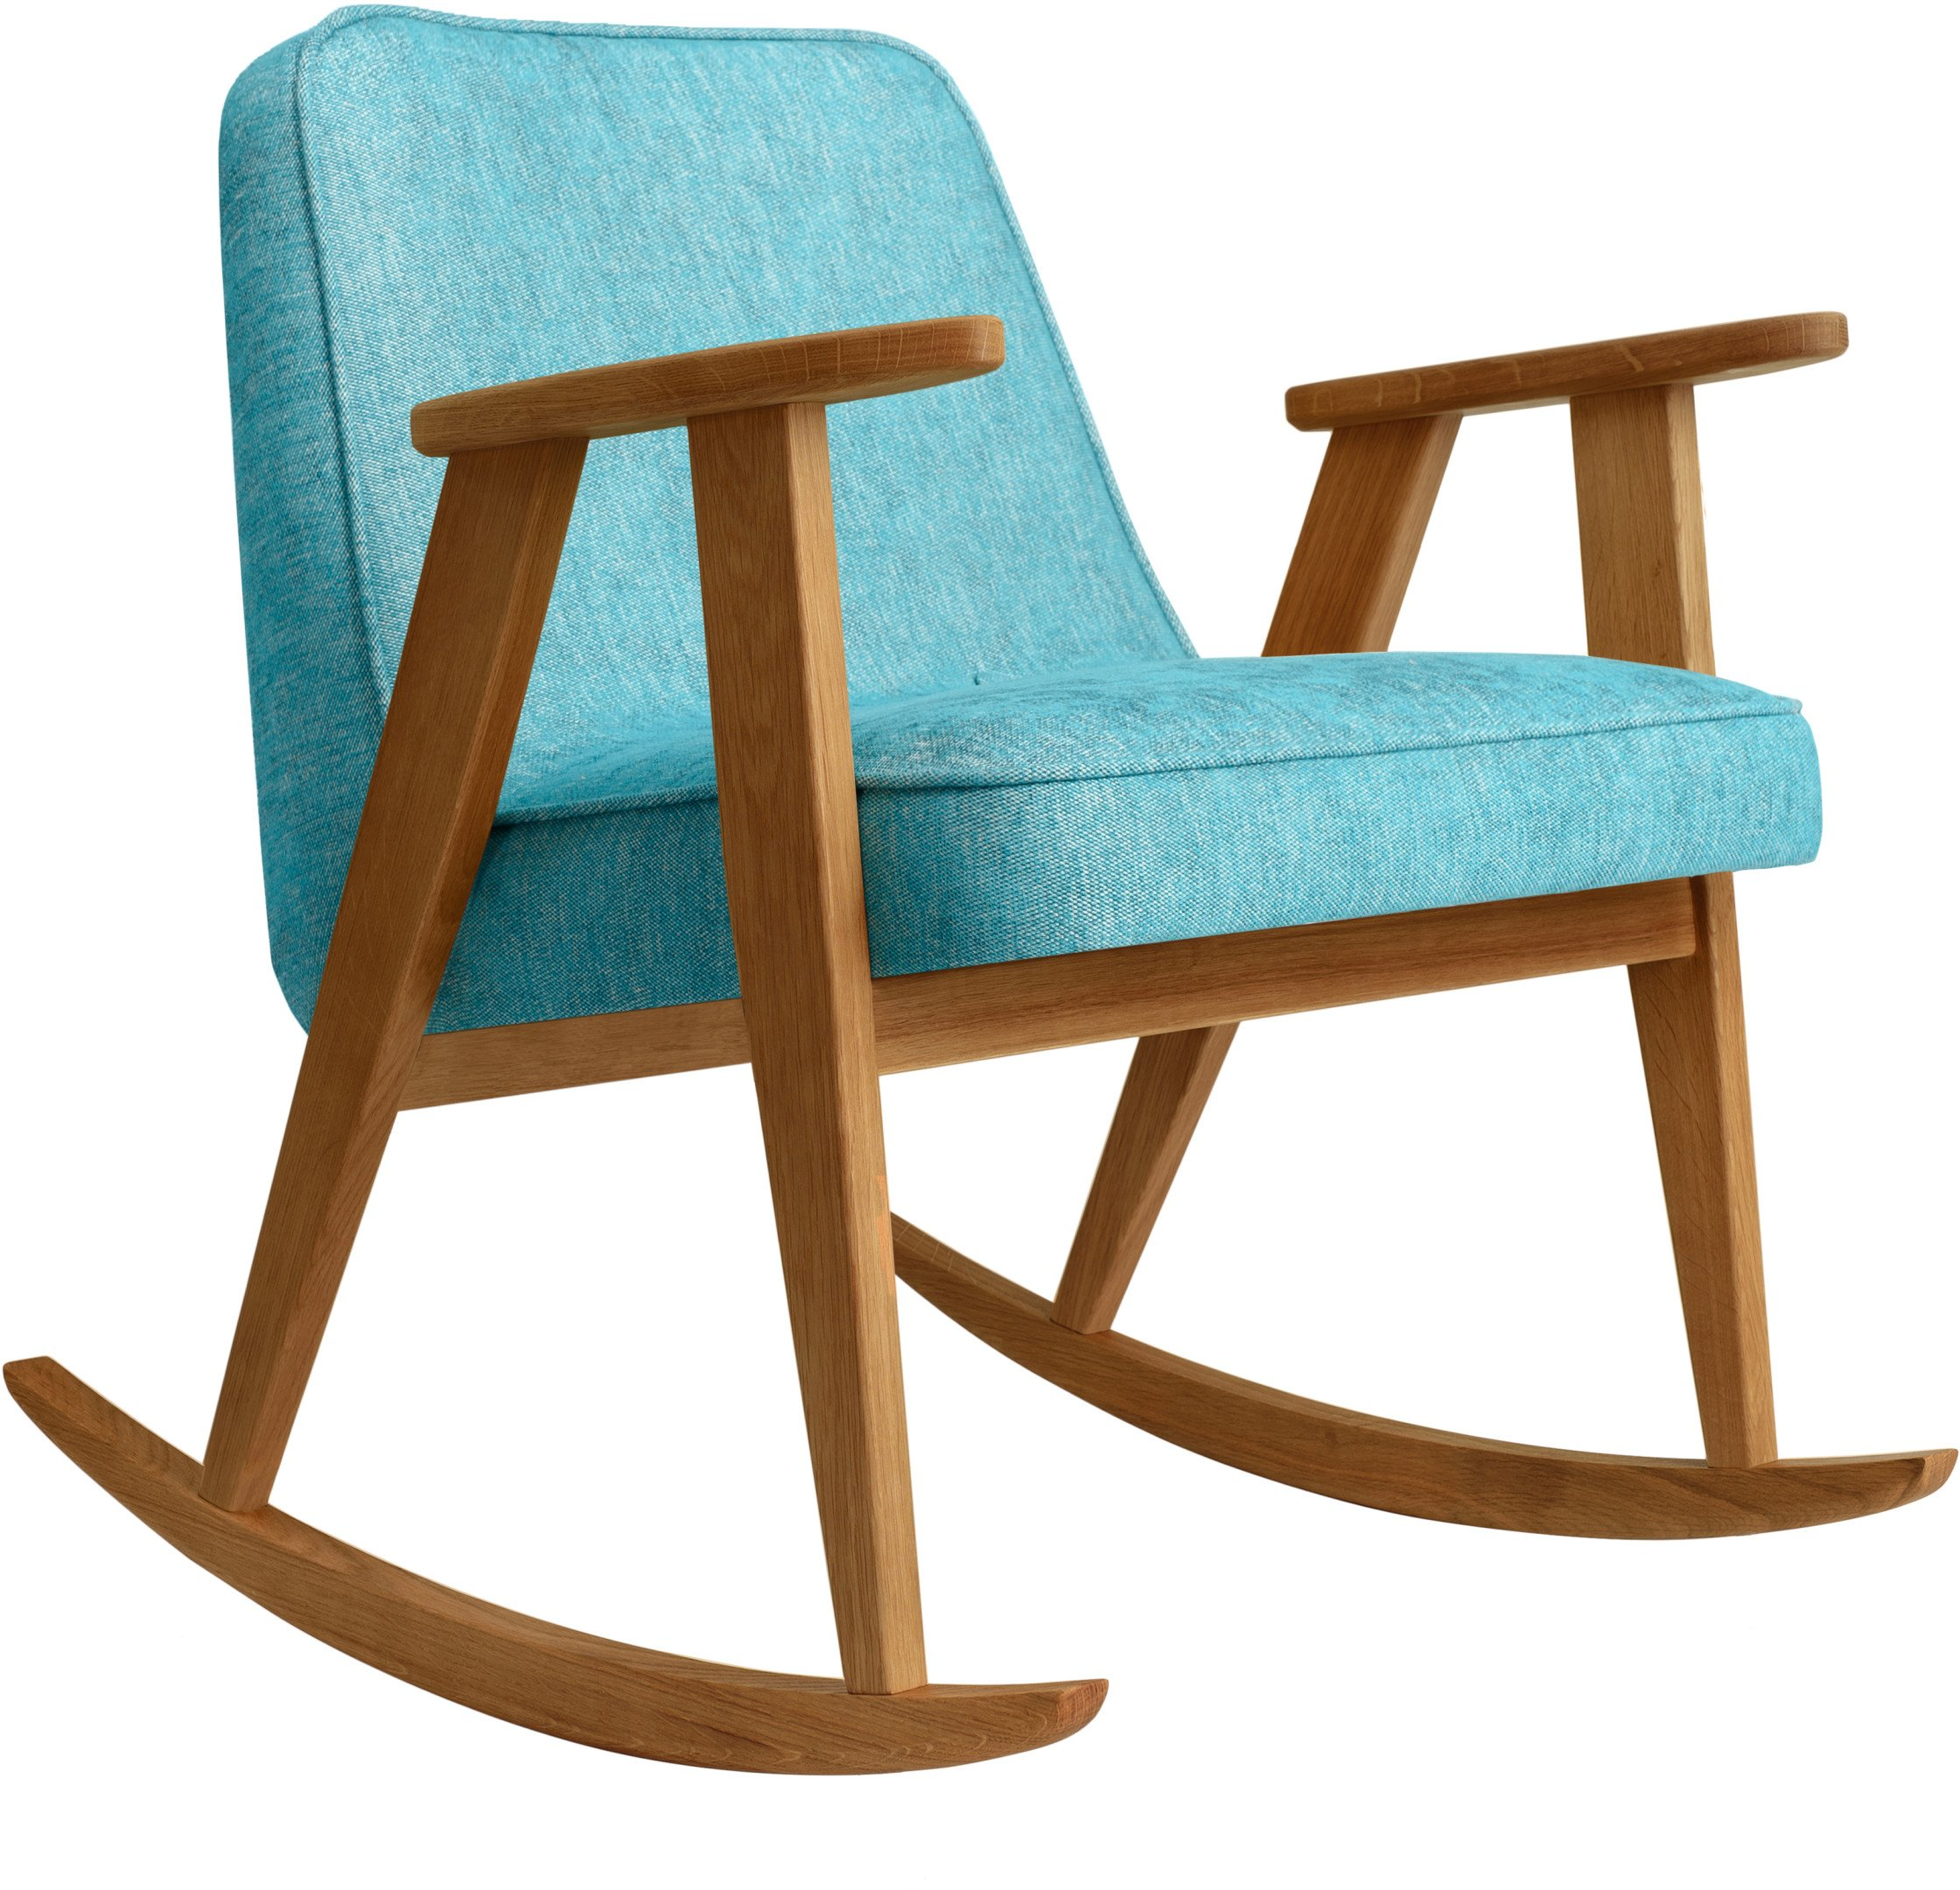 366 Rocking Chair Loft Turquoise (dark oak) by Józef Chierowski